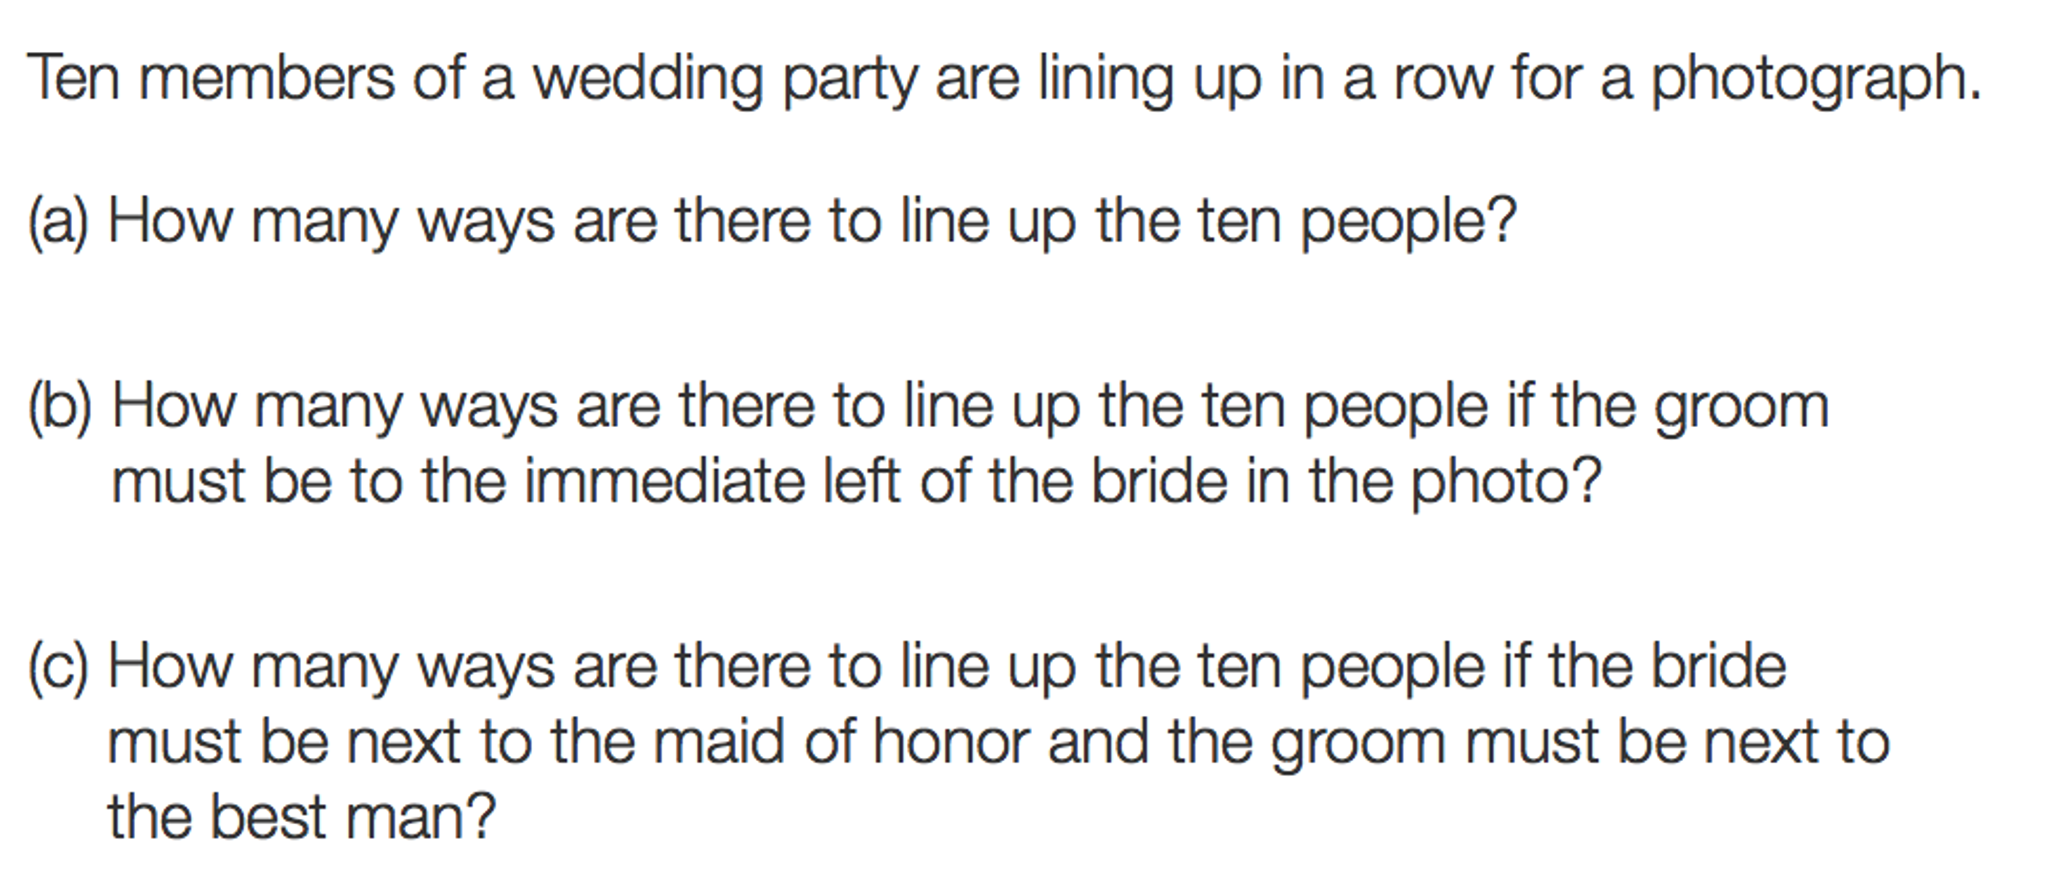 Question Ten Members Of A Wedding Party Are Lining Up In Row For Photograph How Many Ways There